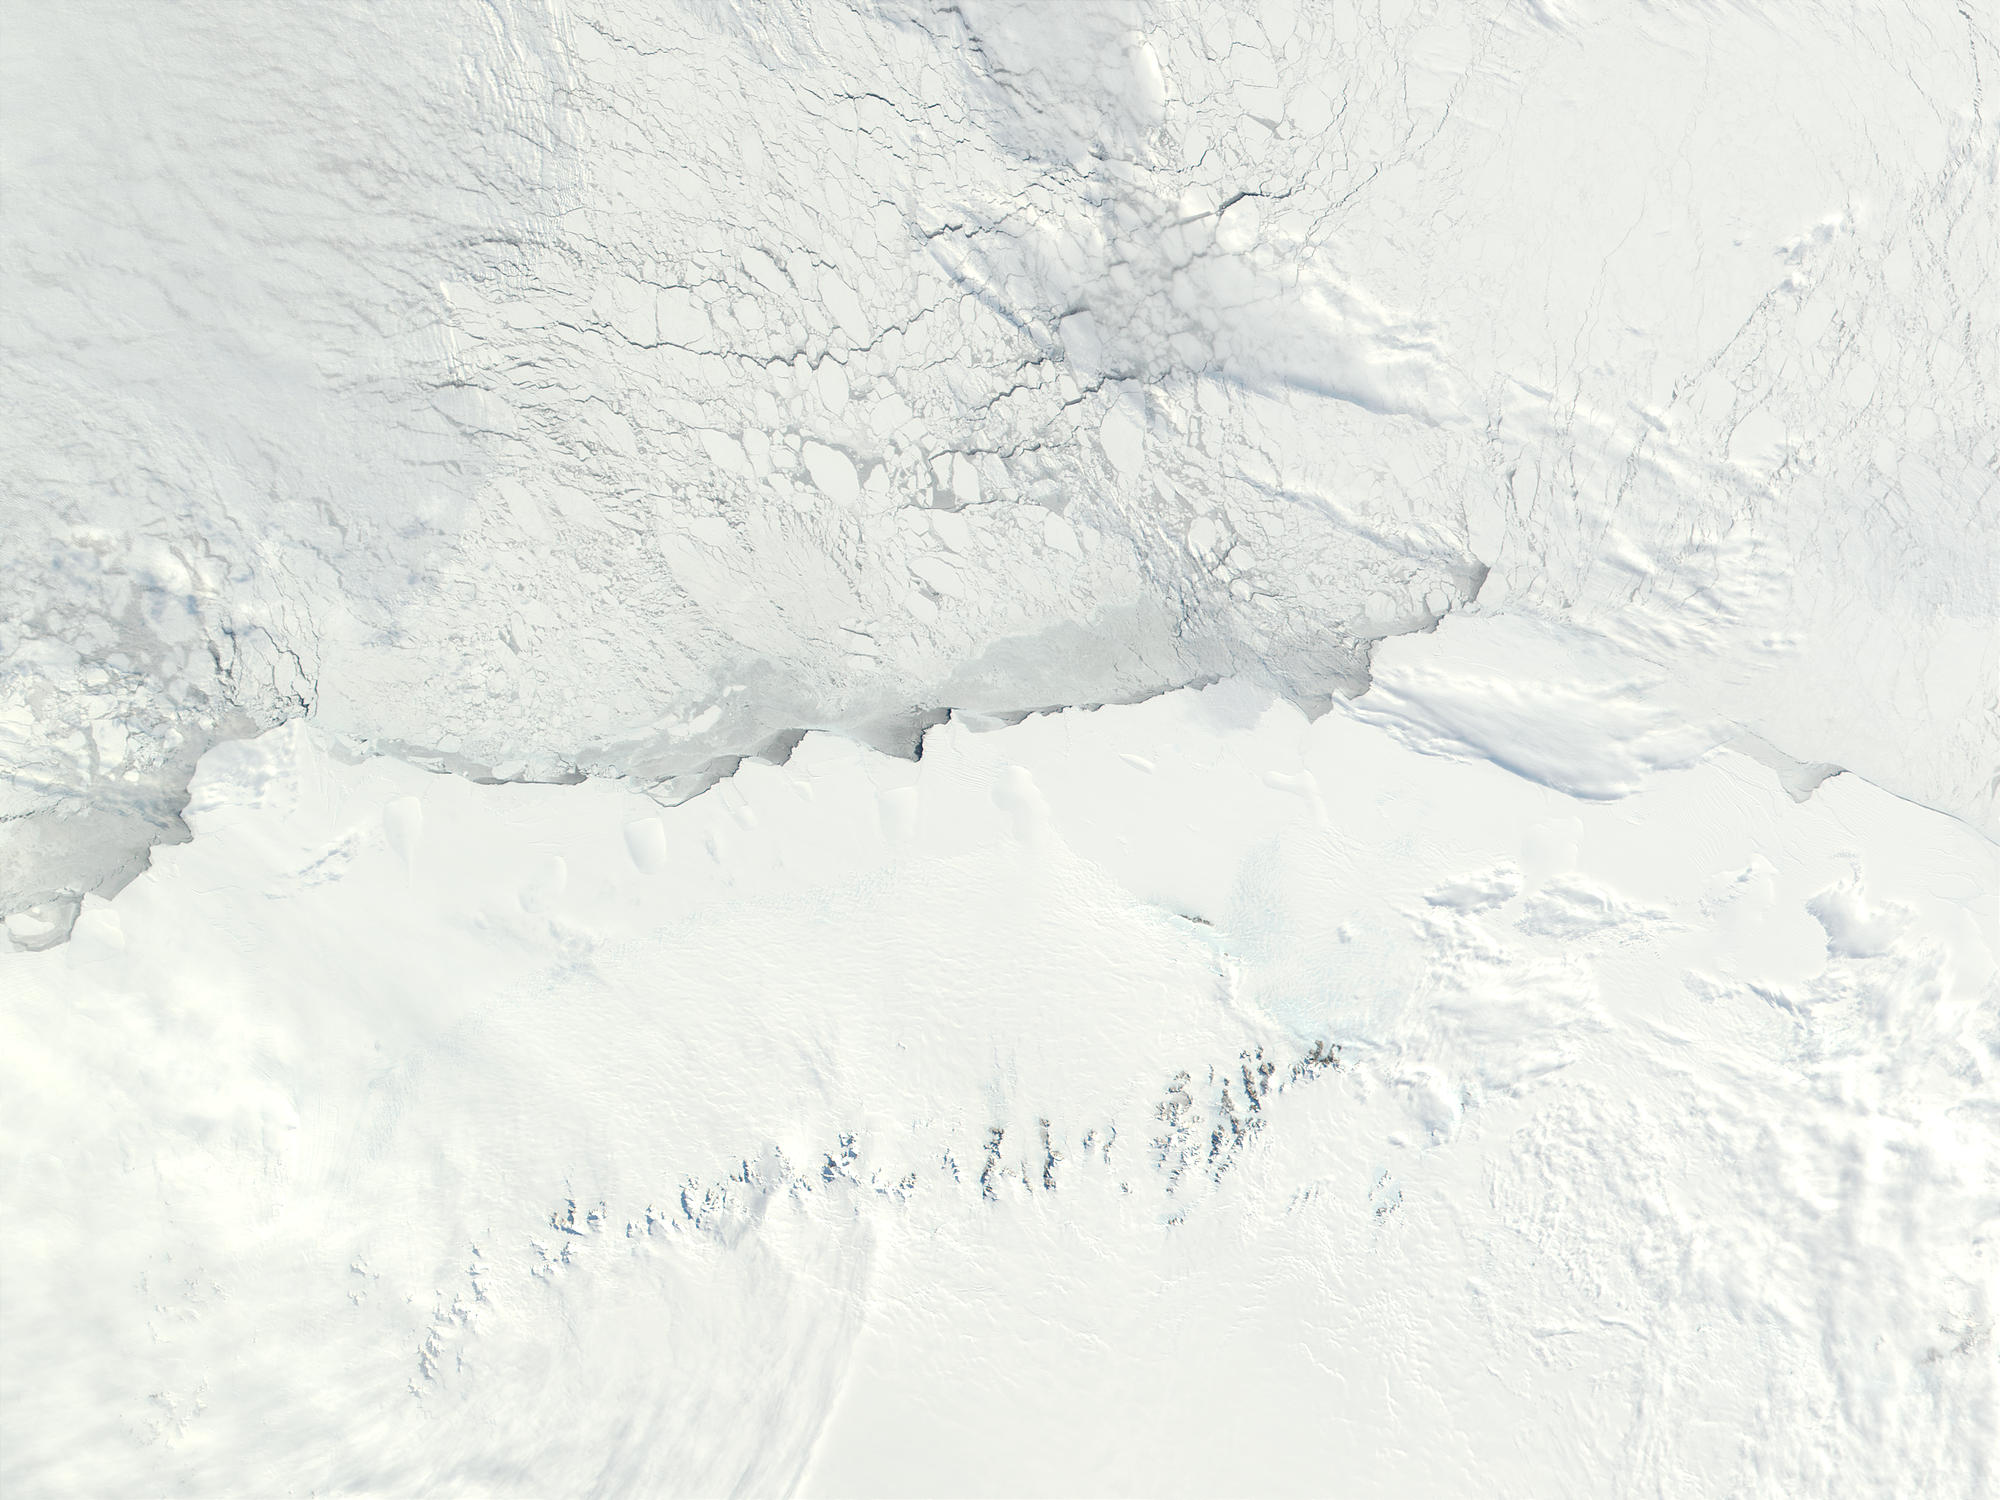 Princess Astrid Coast, Antarctica - related image preview